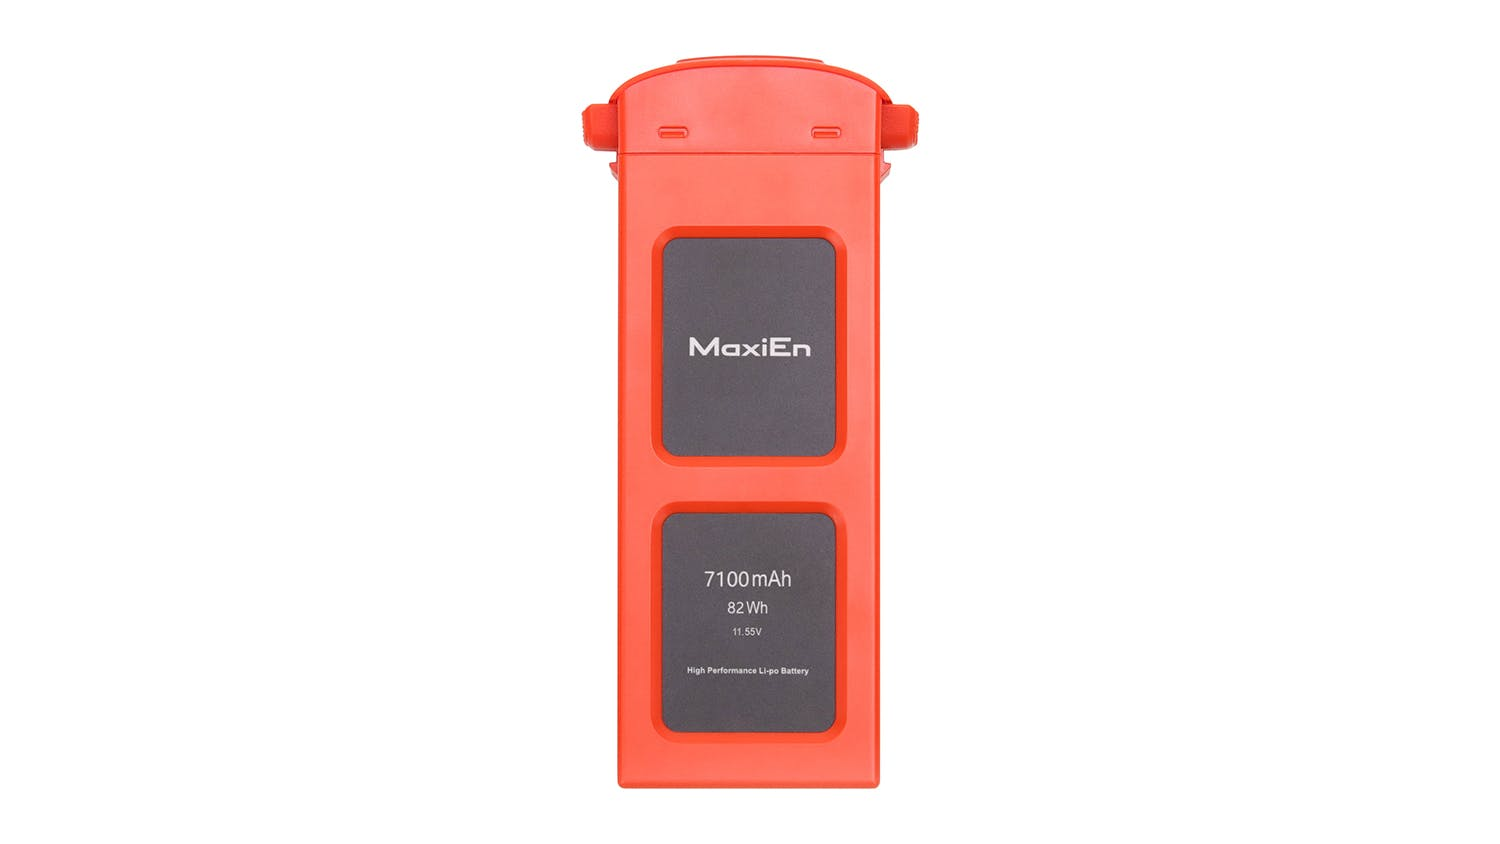 Autel Robotics Battery for Evo 2 Drones